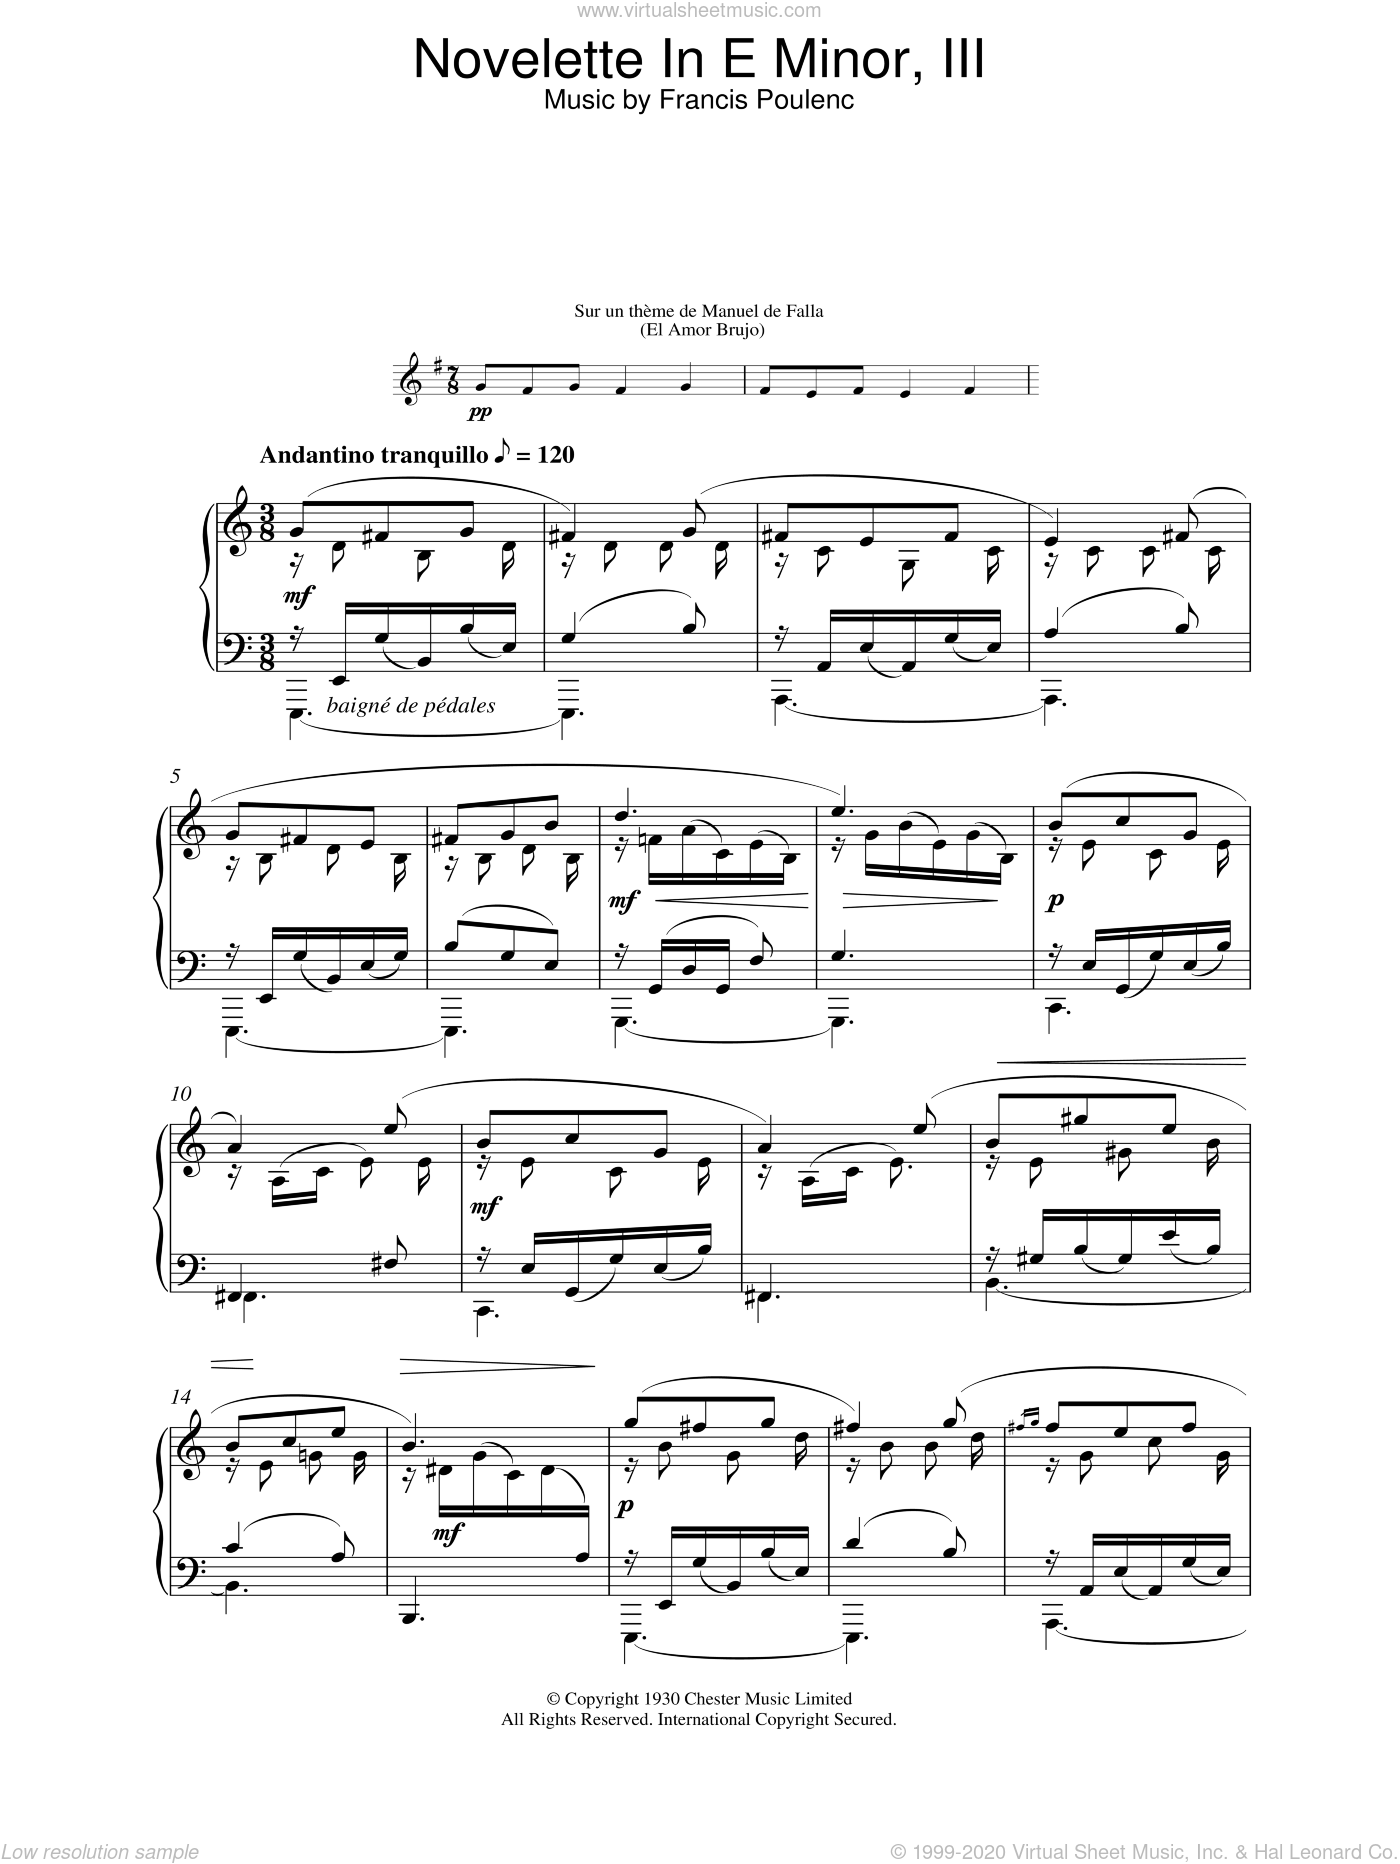 Novelette In E Minor, III sheet music for piano solo by Francis Poulenc